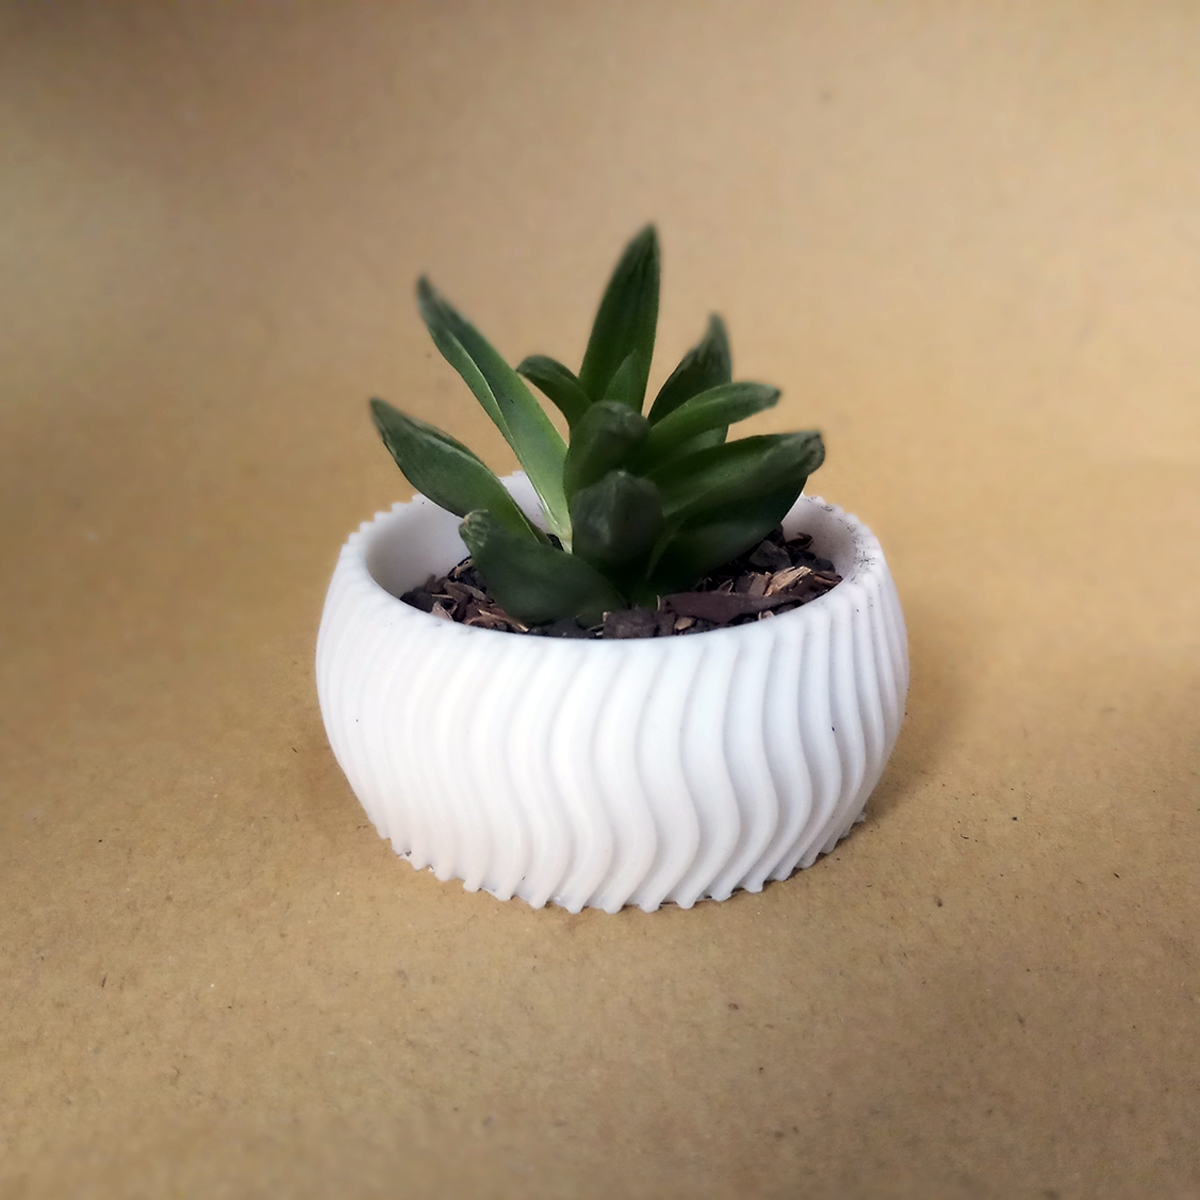 20200726_163217.png Download free STL file Cactus Planter 2 - small • 3D printing object, Prigle